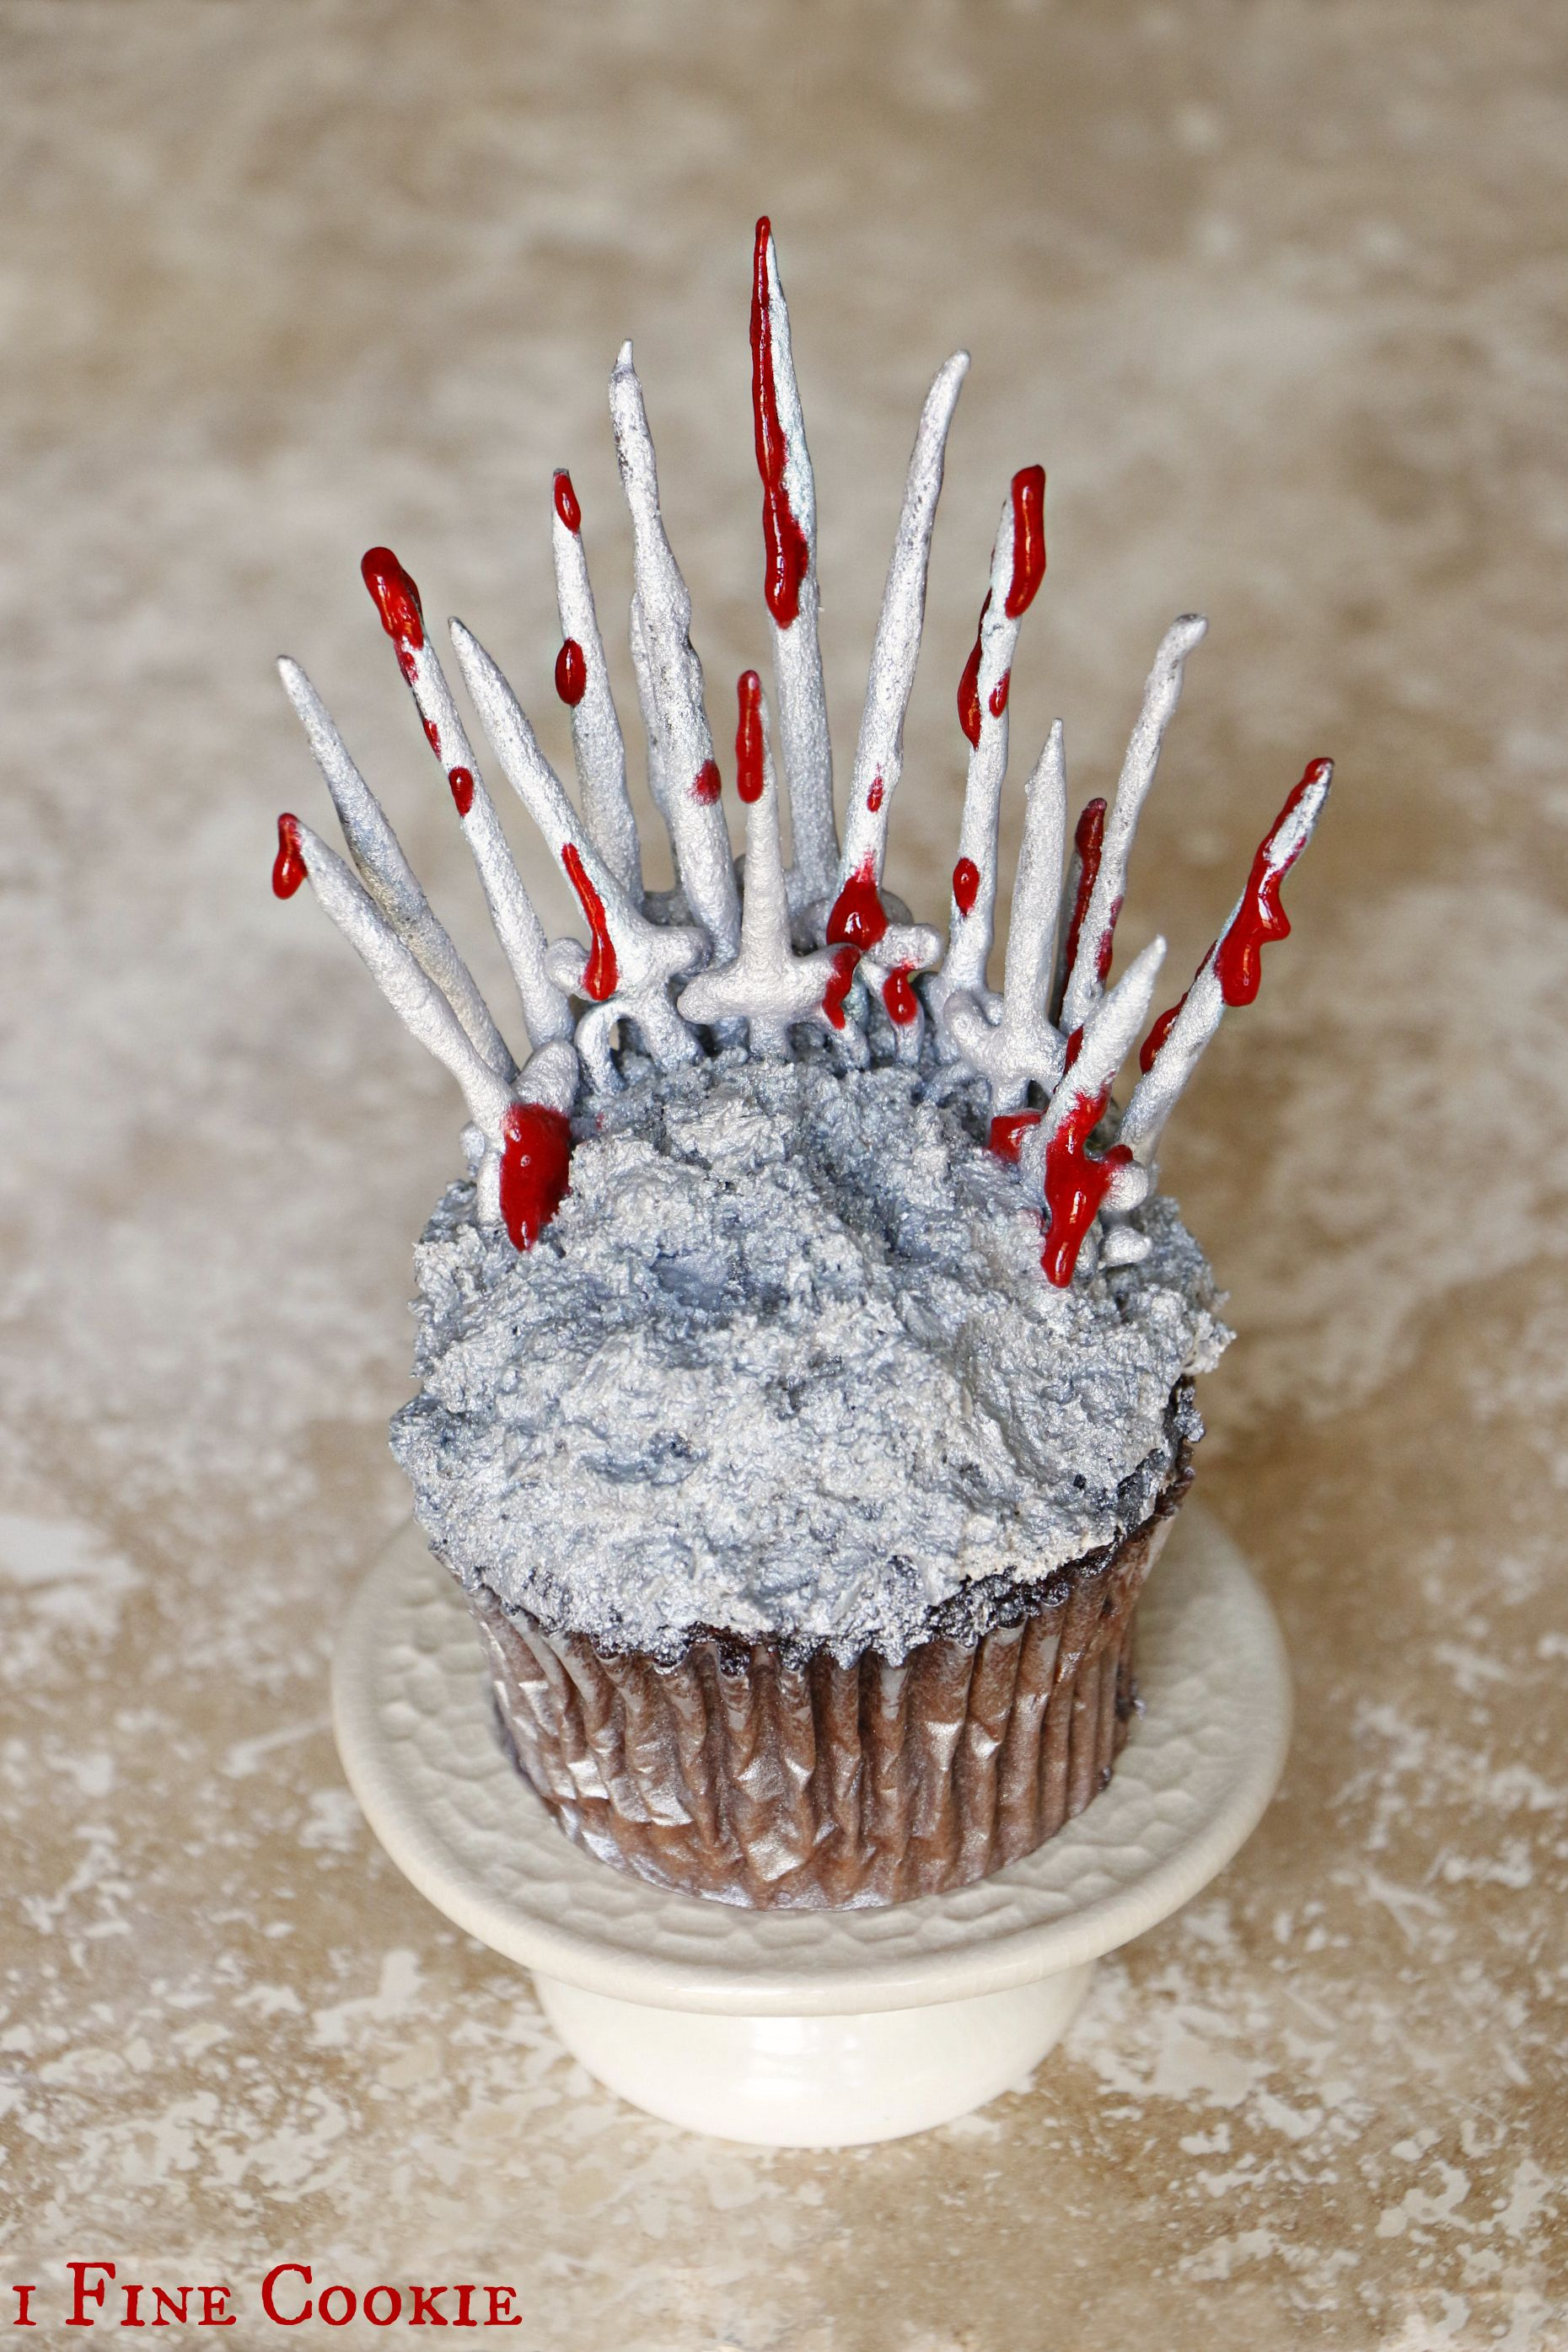 Game Of Thrones Cupcakes Recipe With Images Game Of Thrones